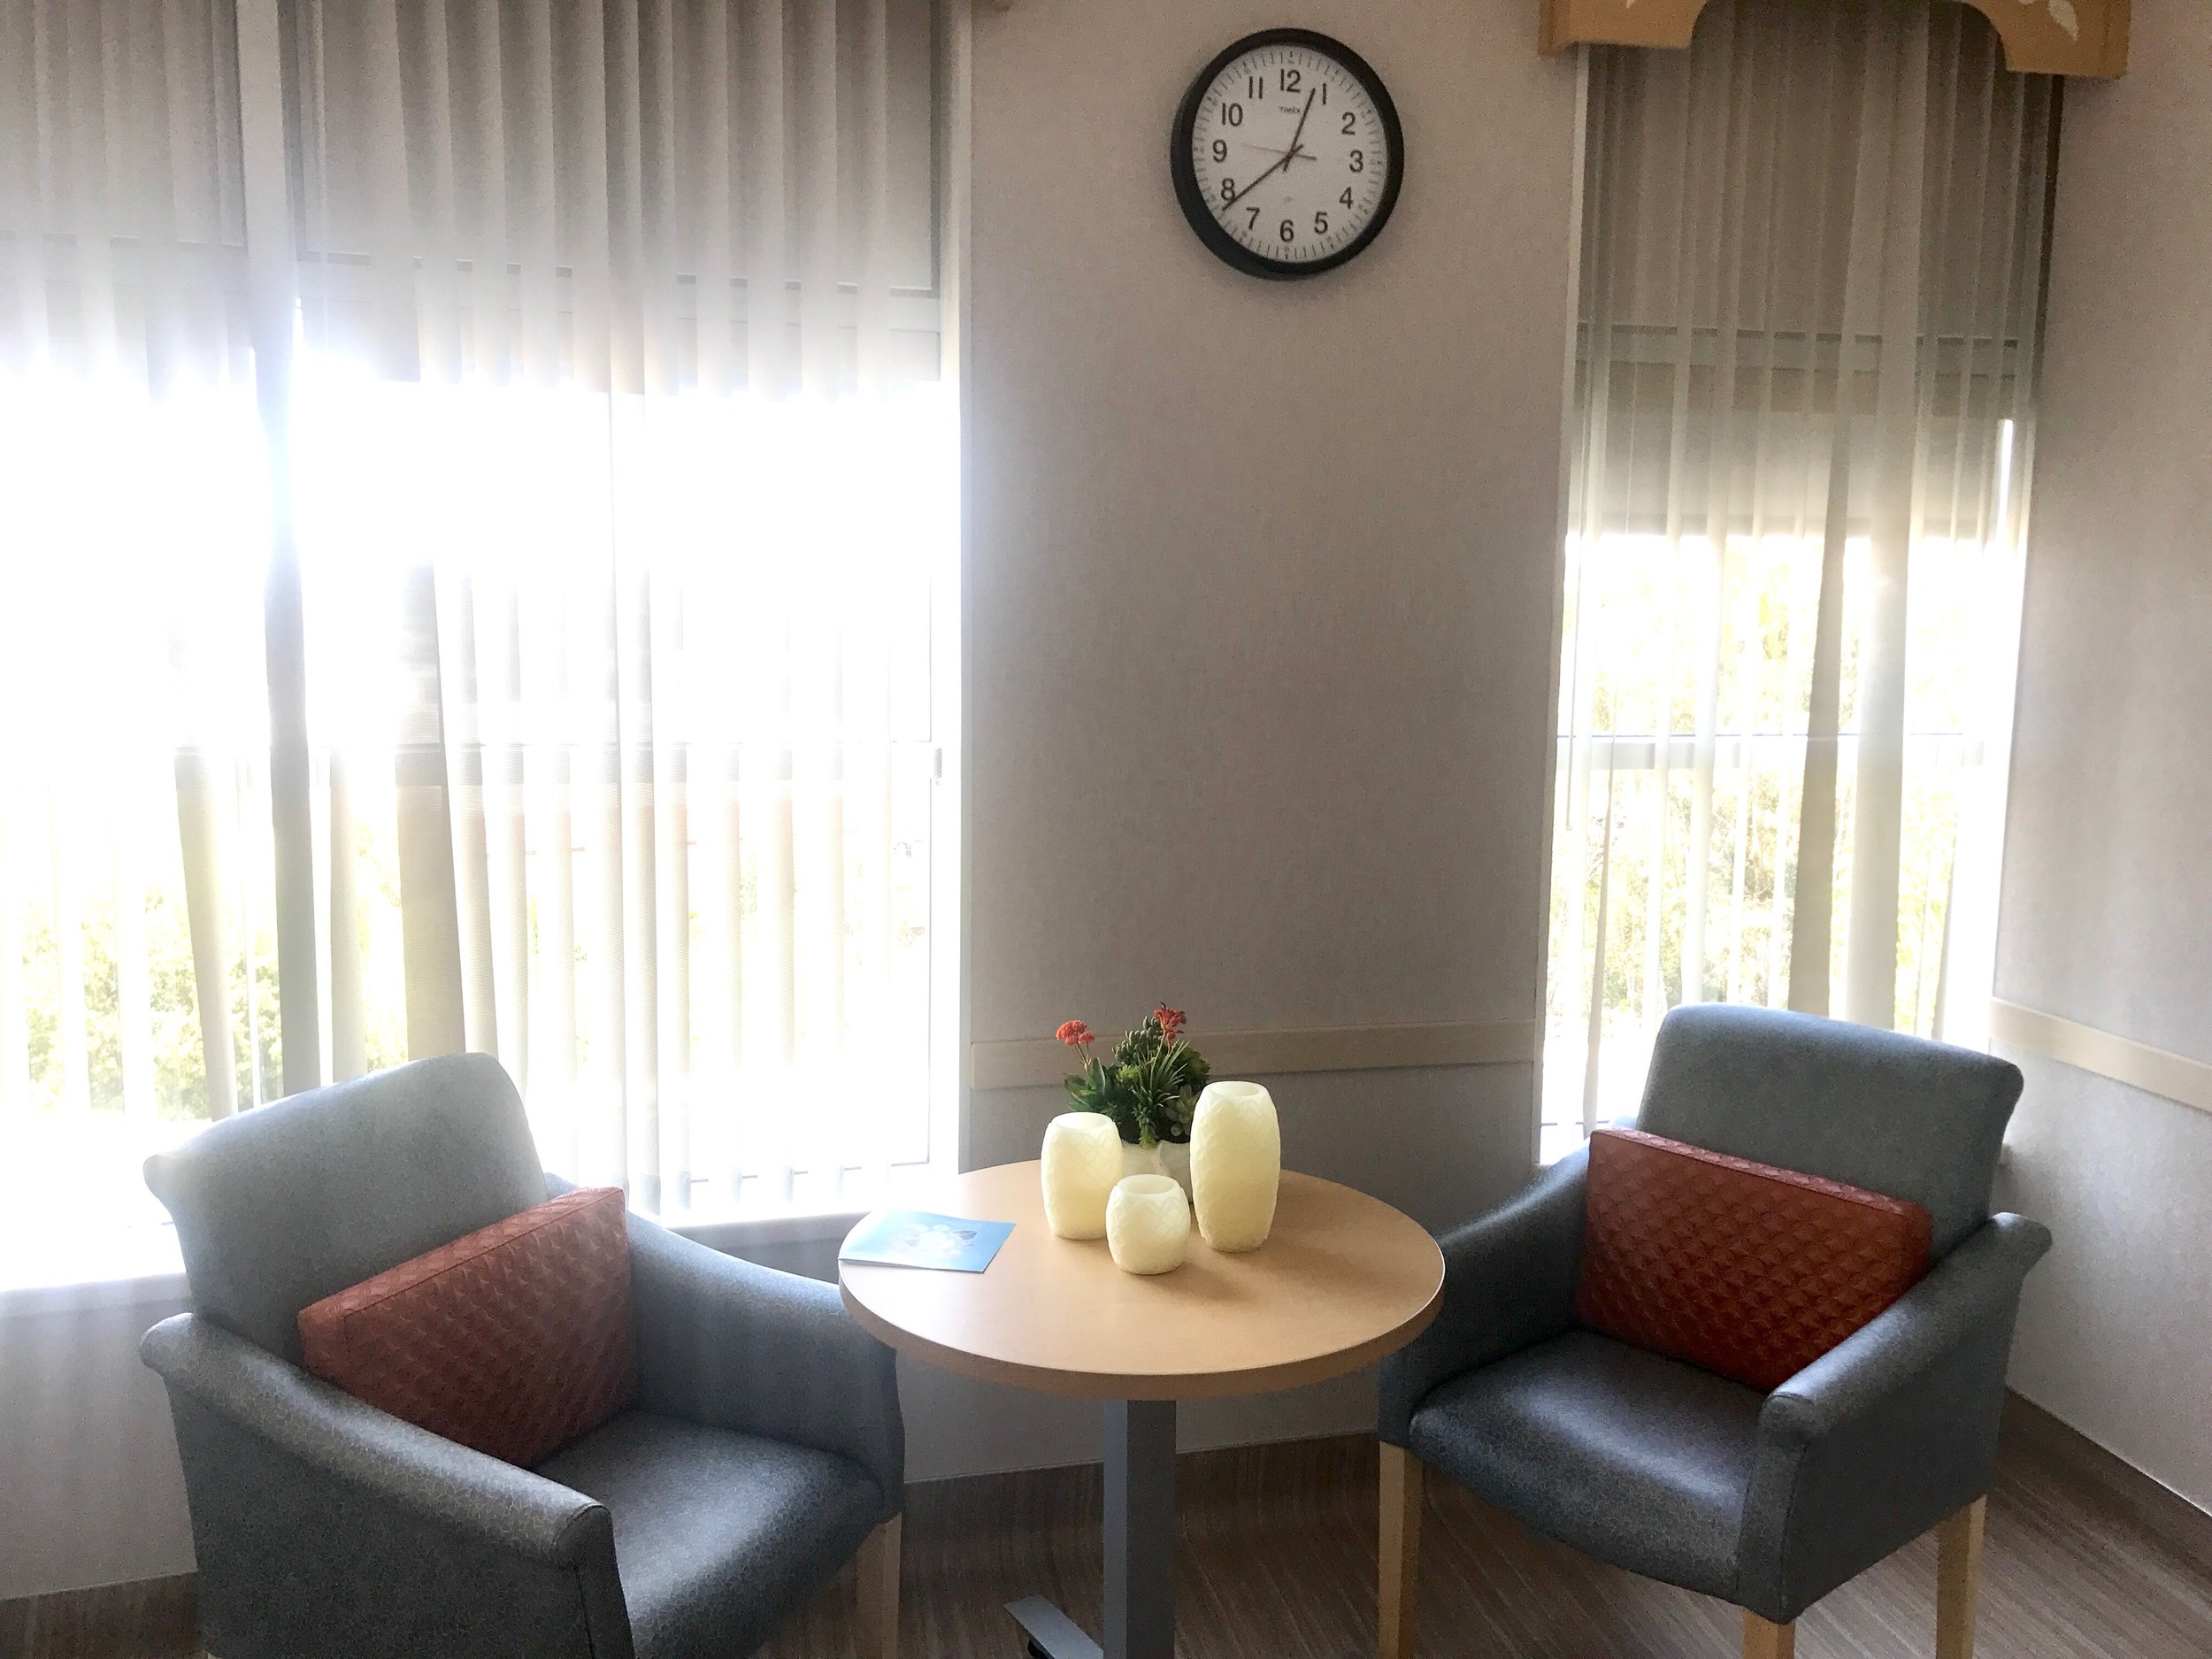 Mission Midwifery Suites Chairs